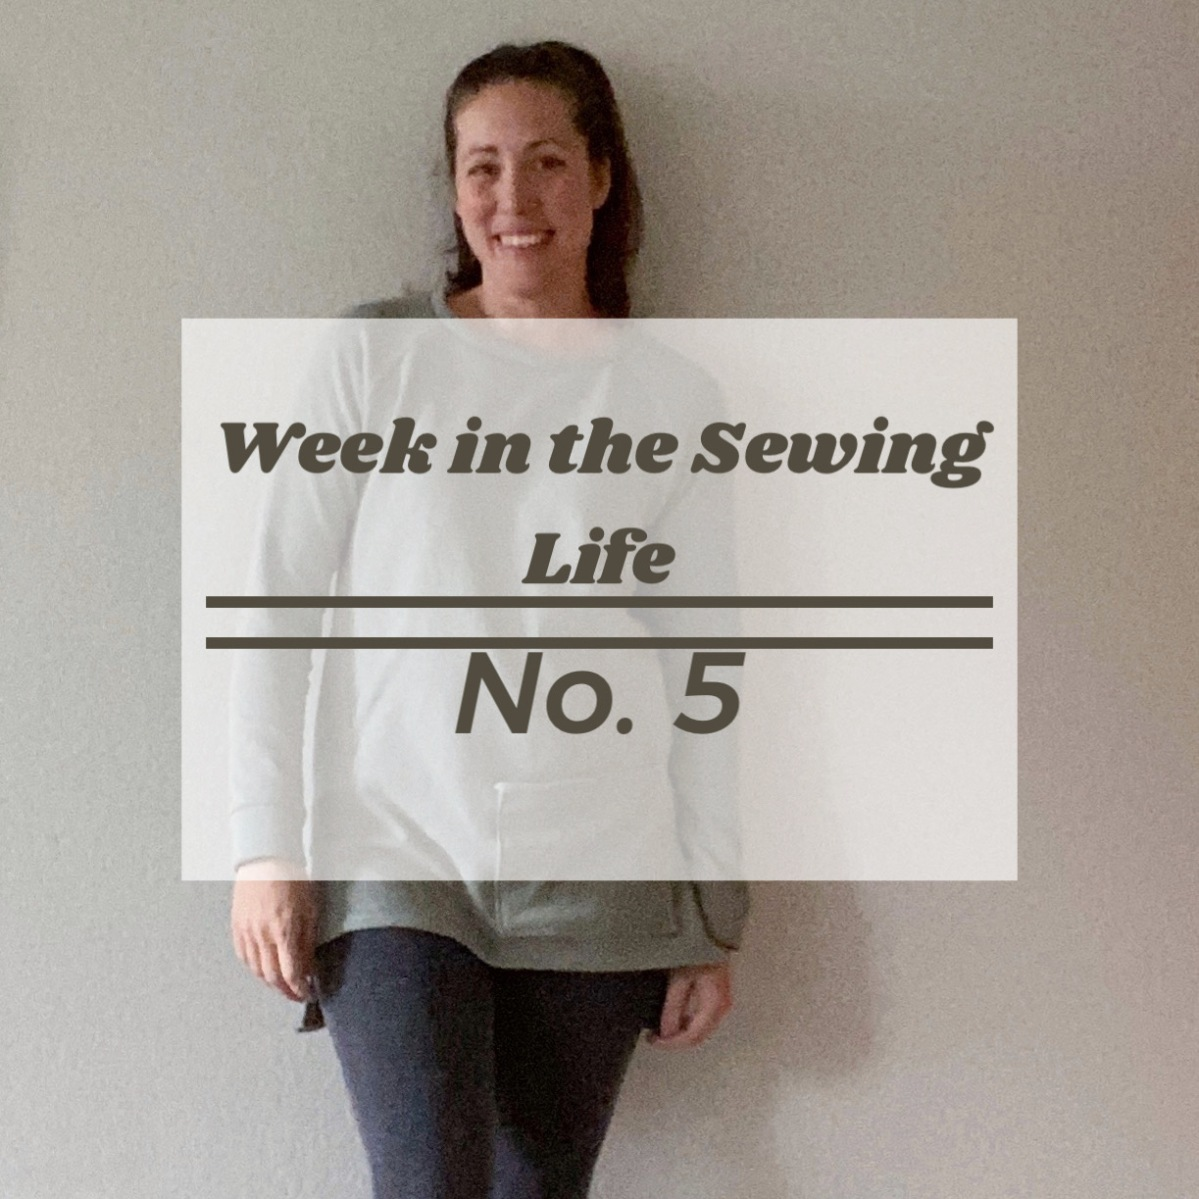 Week in the Sewing Life no.5